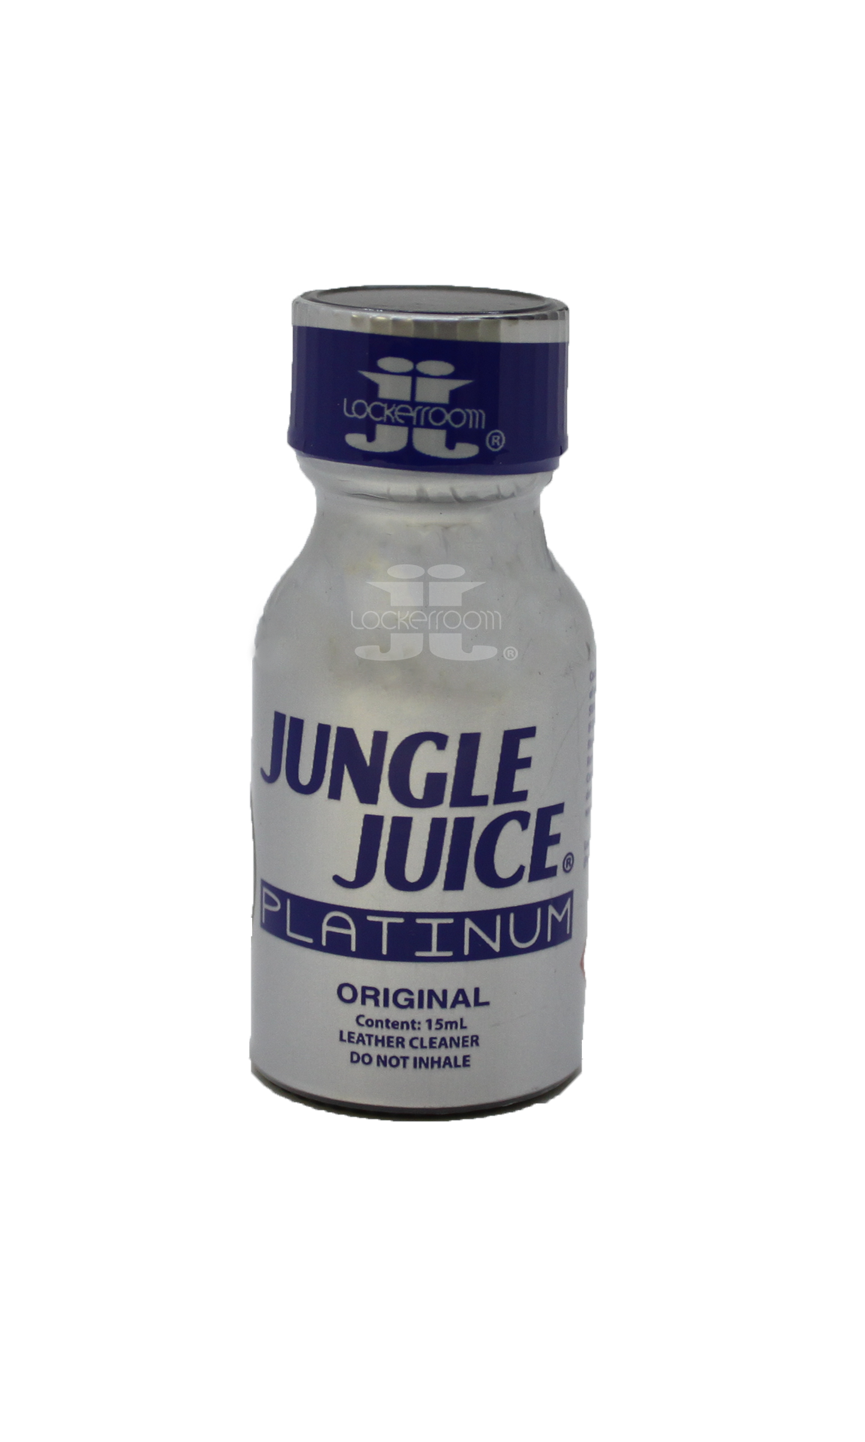 Jungle Juice Platinum 15mL Bottle